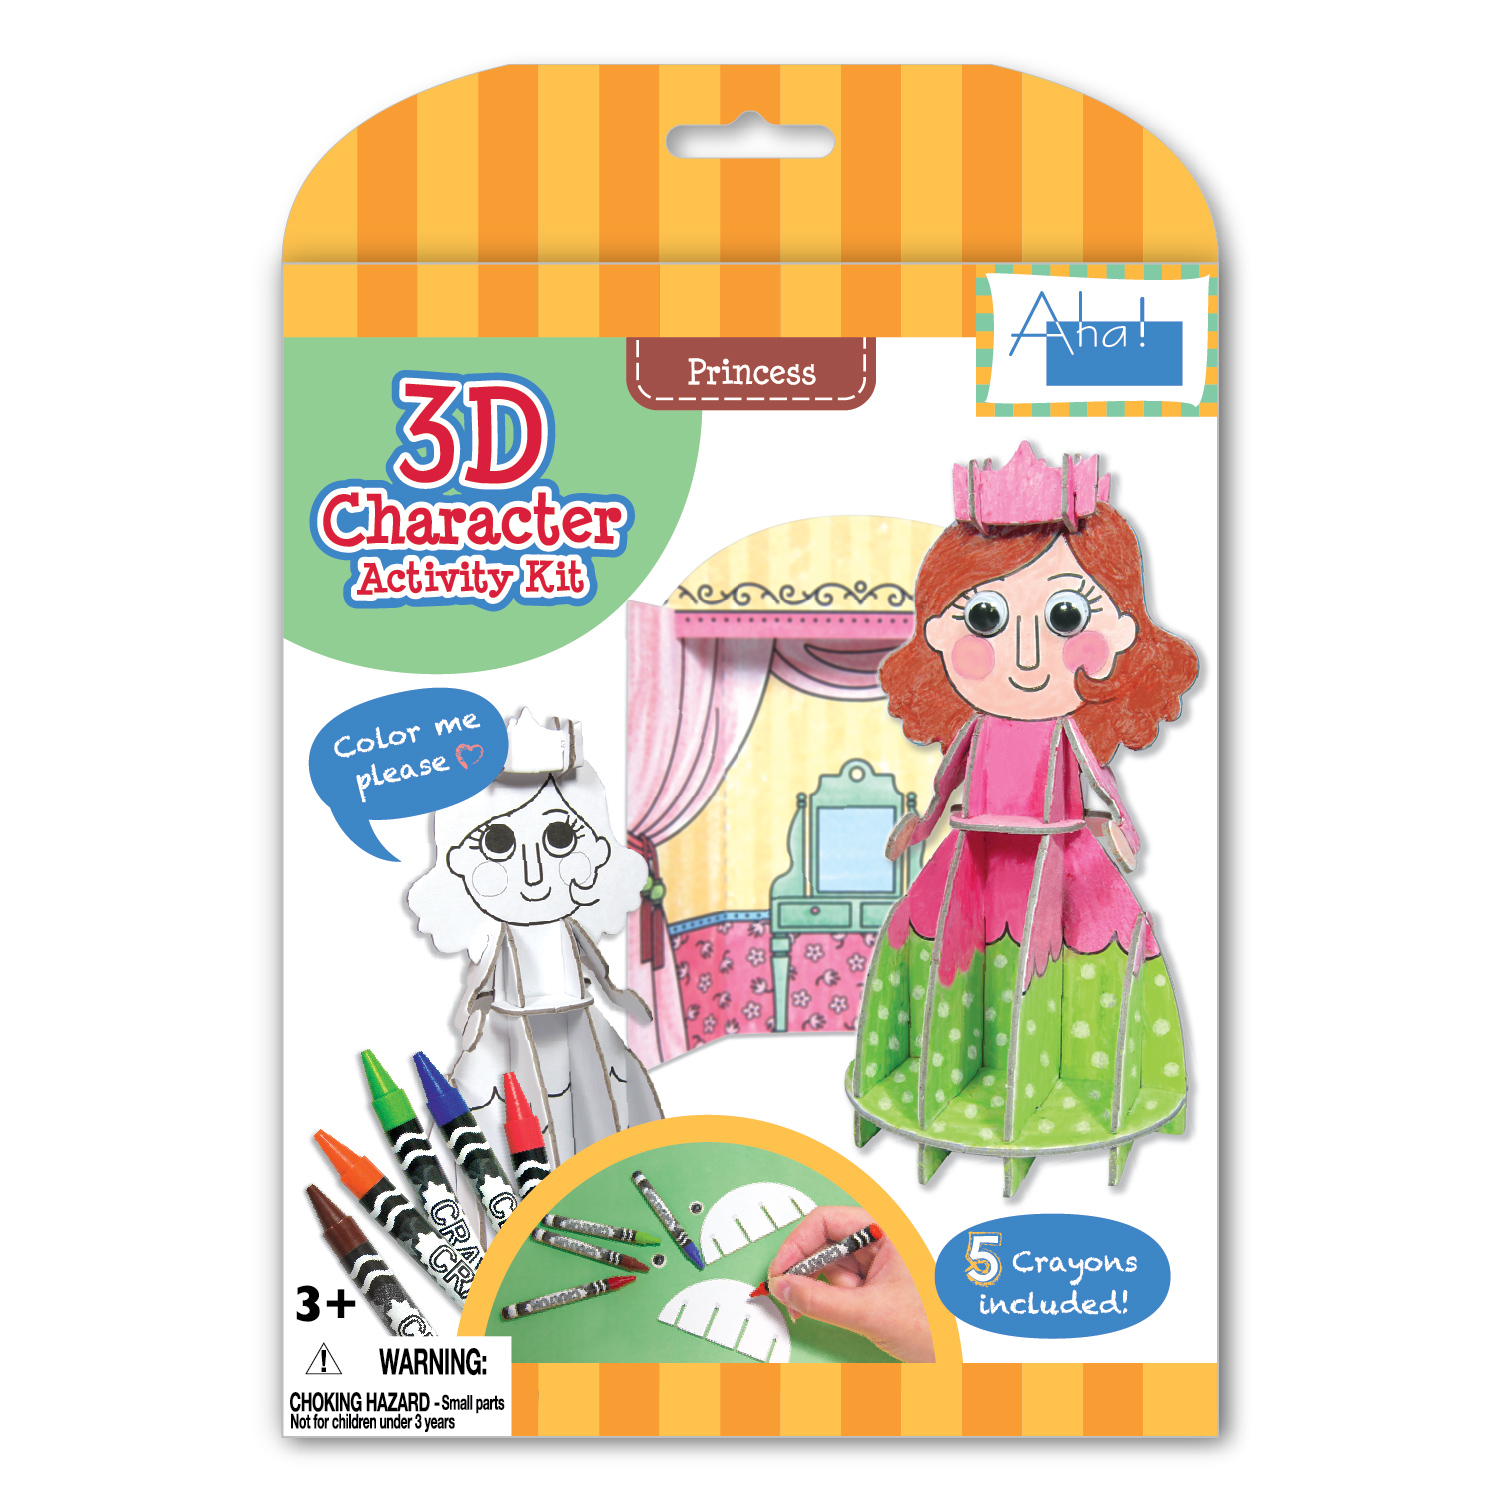 3D Character Activity Kit